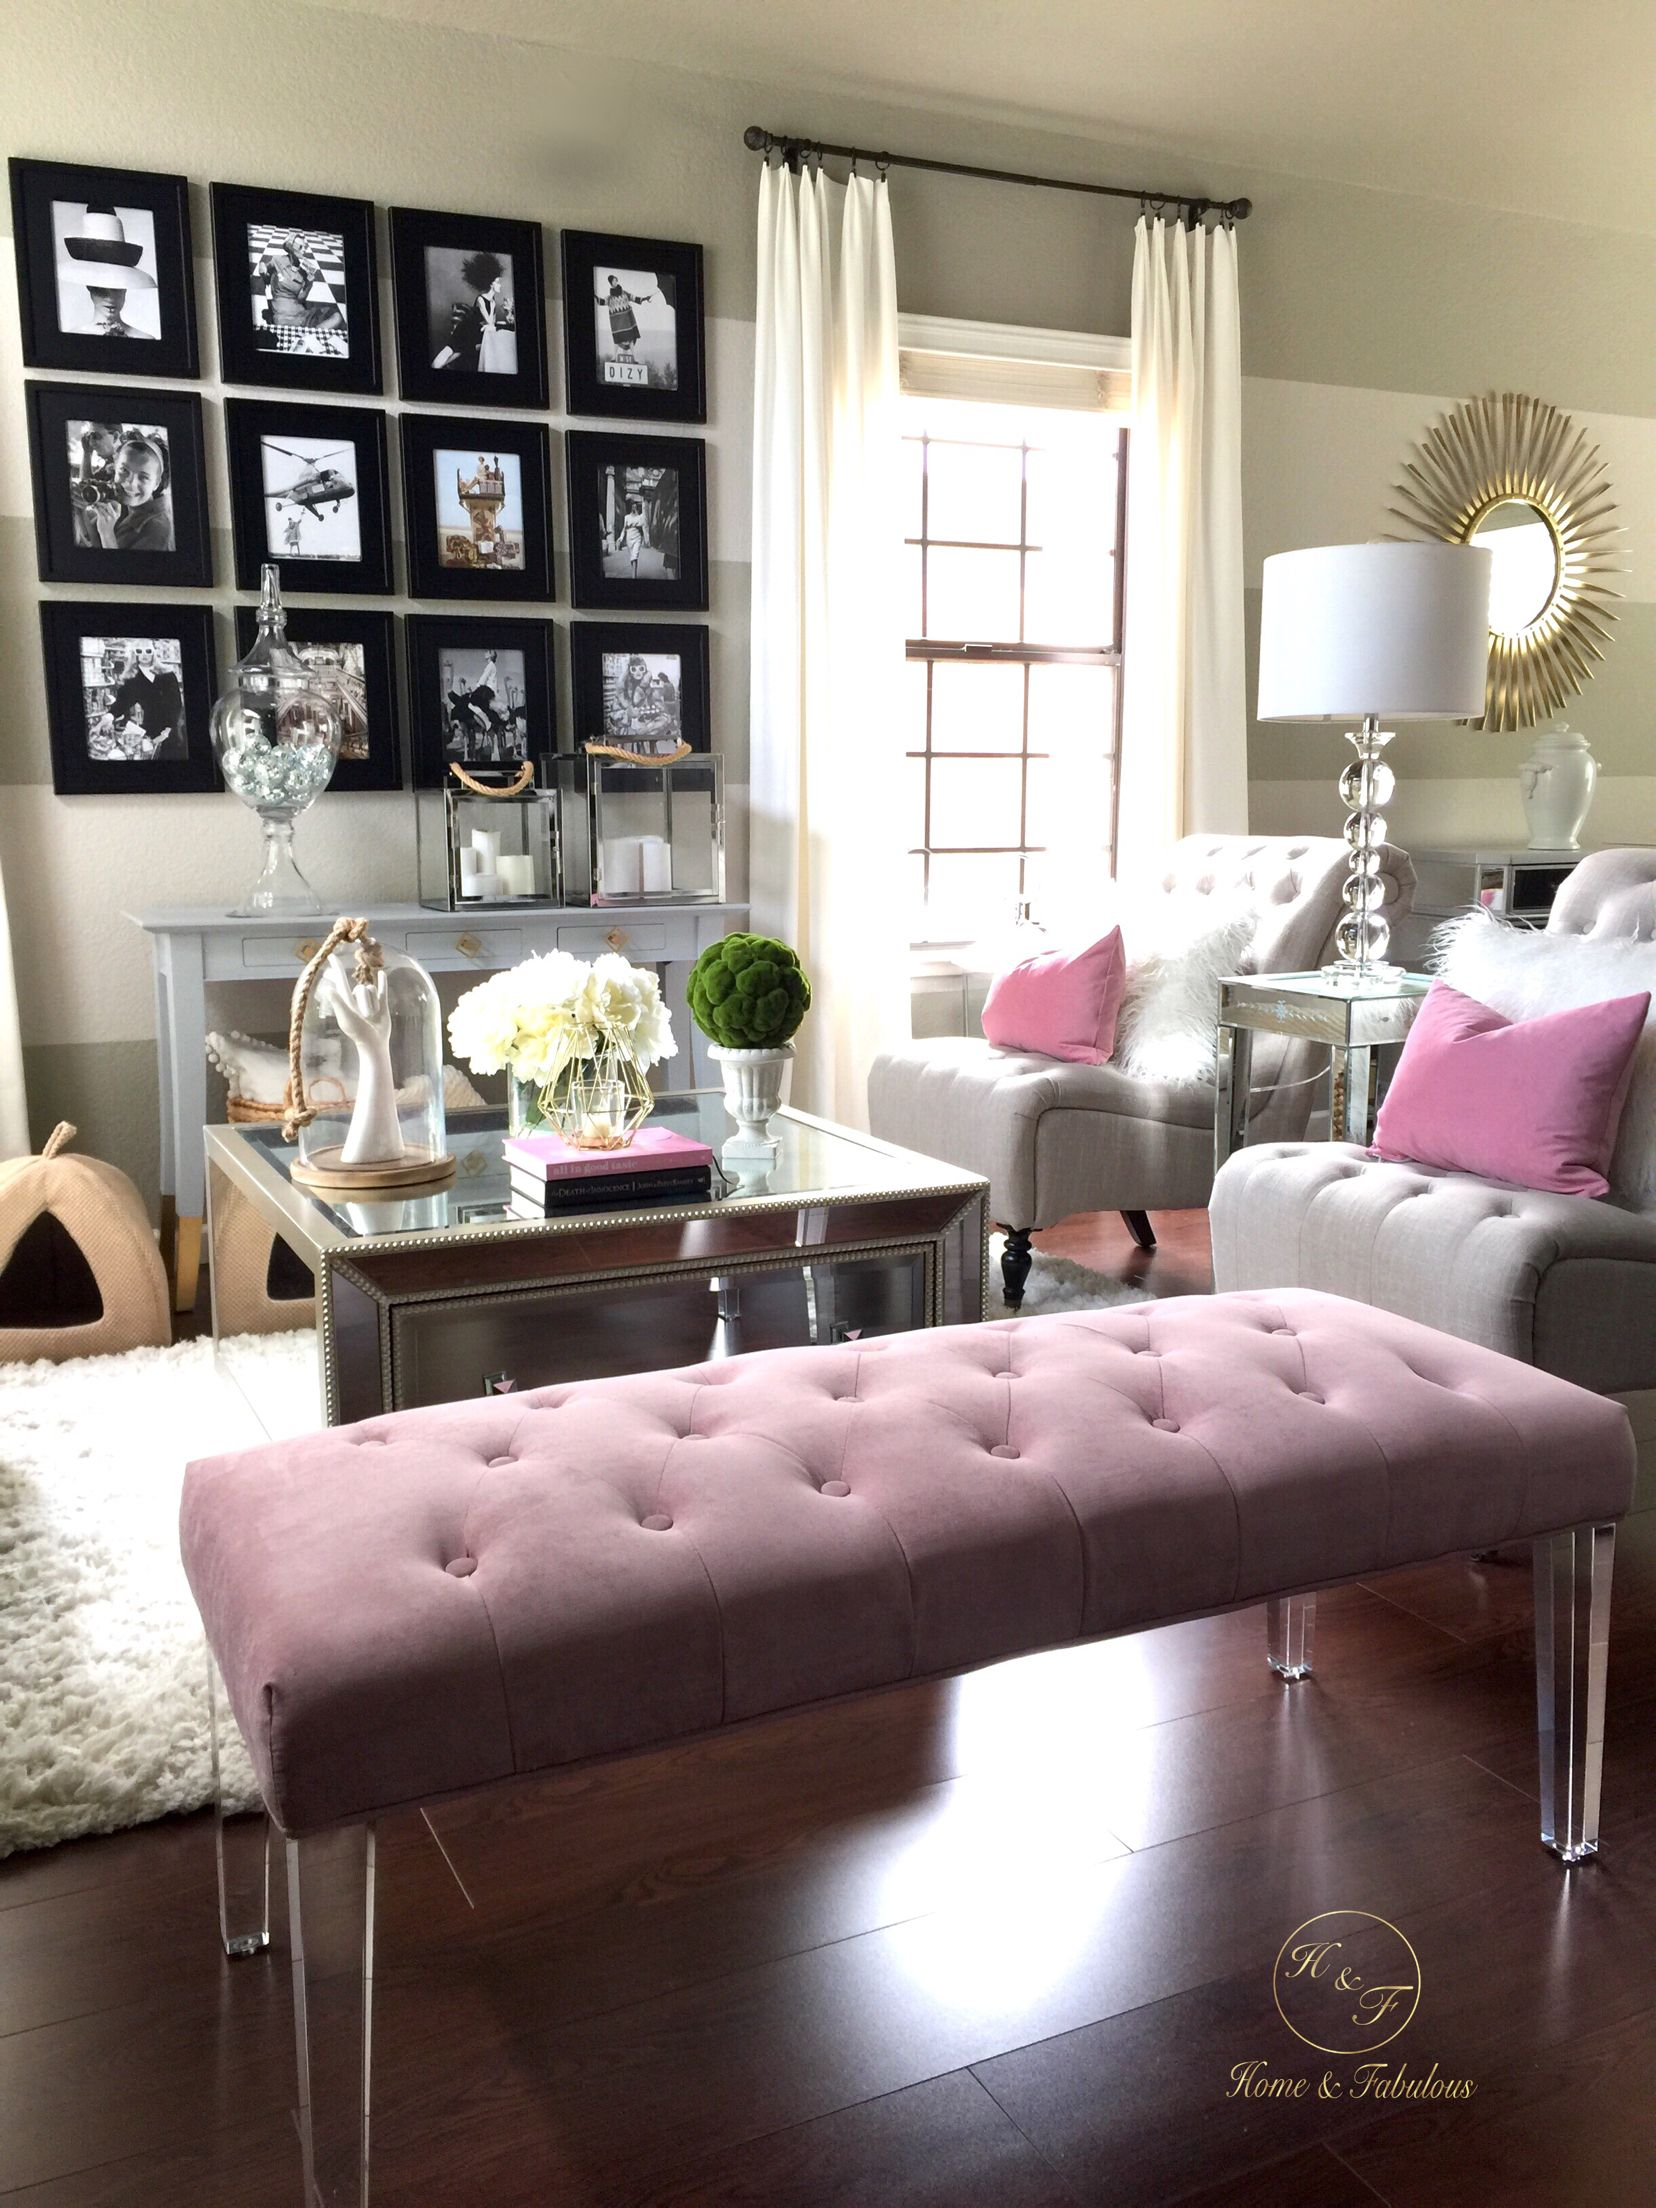 benches for living rooms room with 2 couches facing each other home and fabulous dwelling pinterest this pink tufted bench from homegoods really makes my stand out don t be afraid to use color sponsored pin